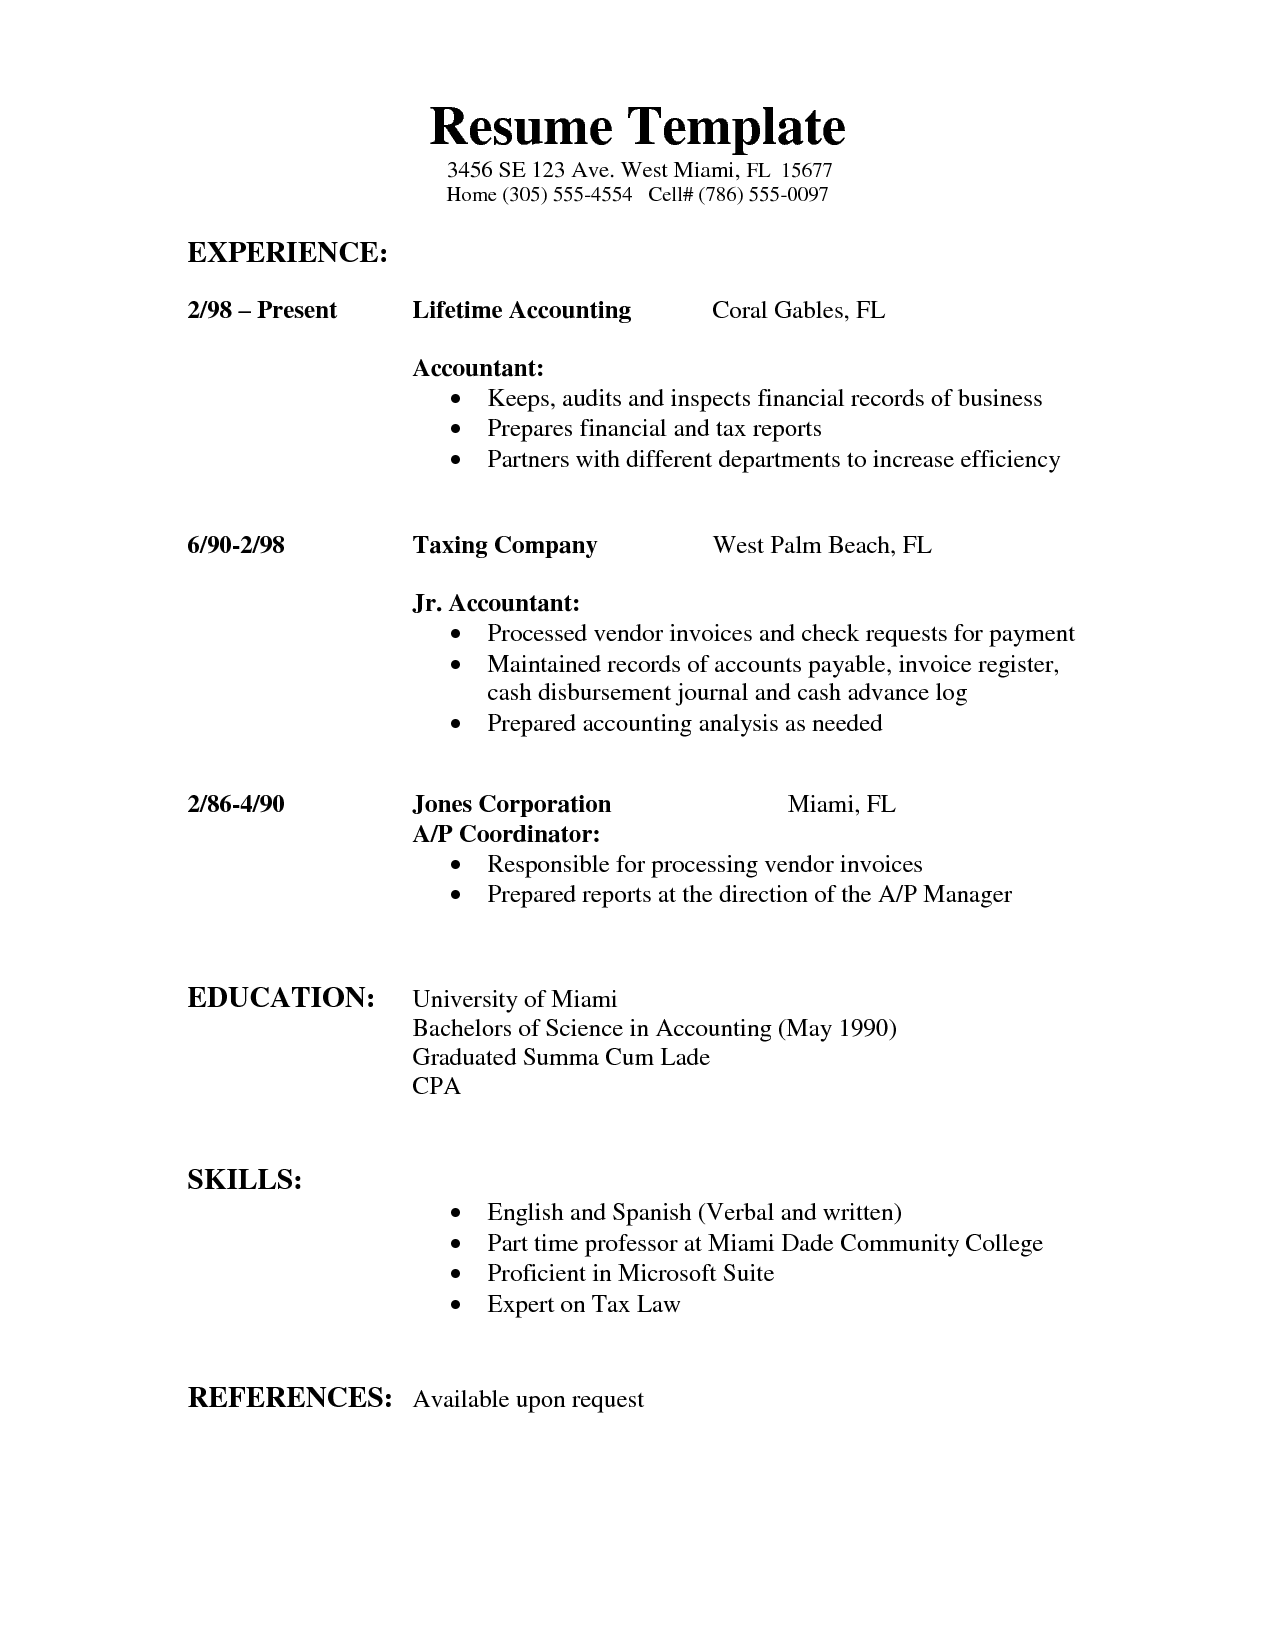 format of simple resumes - Samples Of Simple Resumes